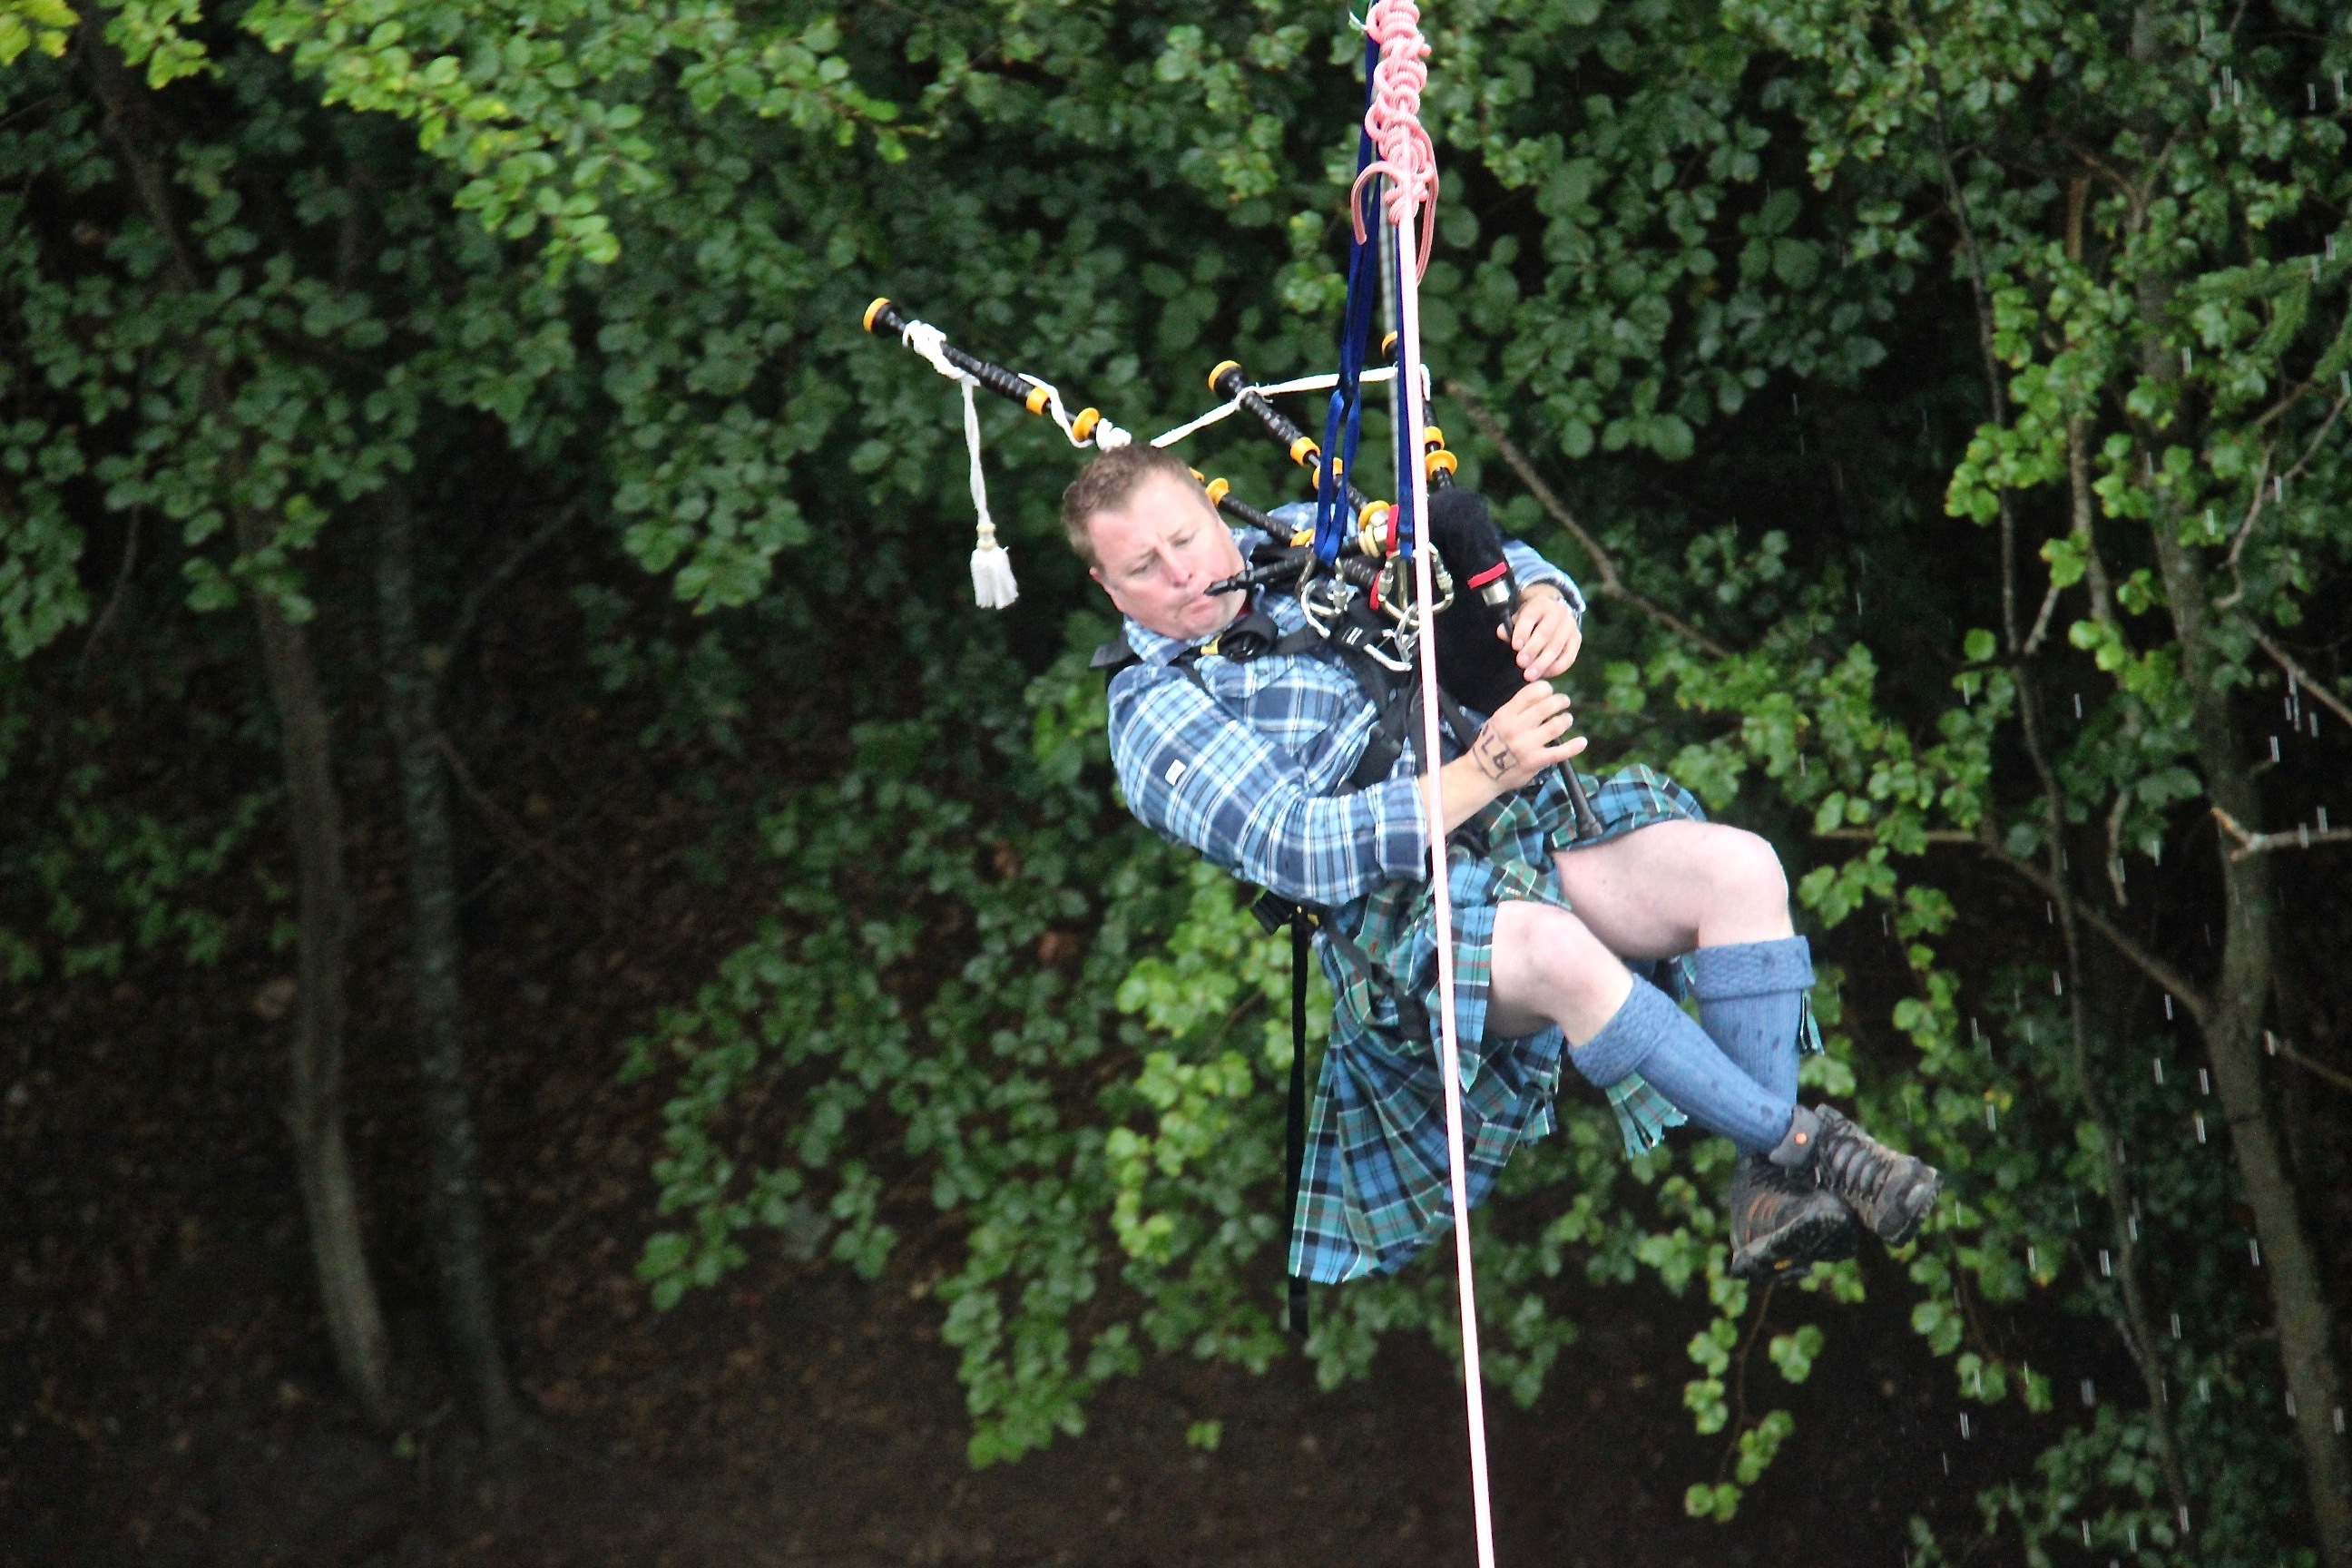 Roddy Garden was the first to use the new Highland Swing over the River Garry.